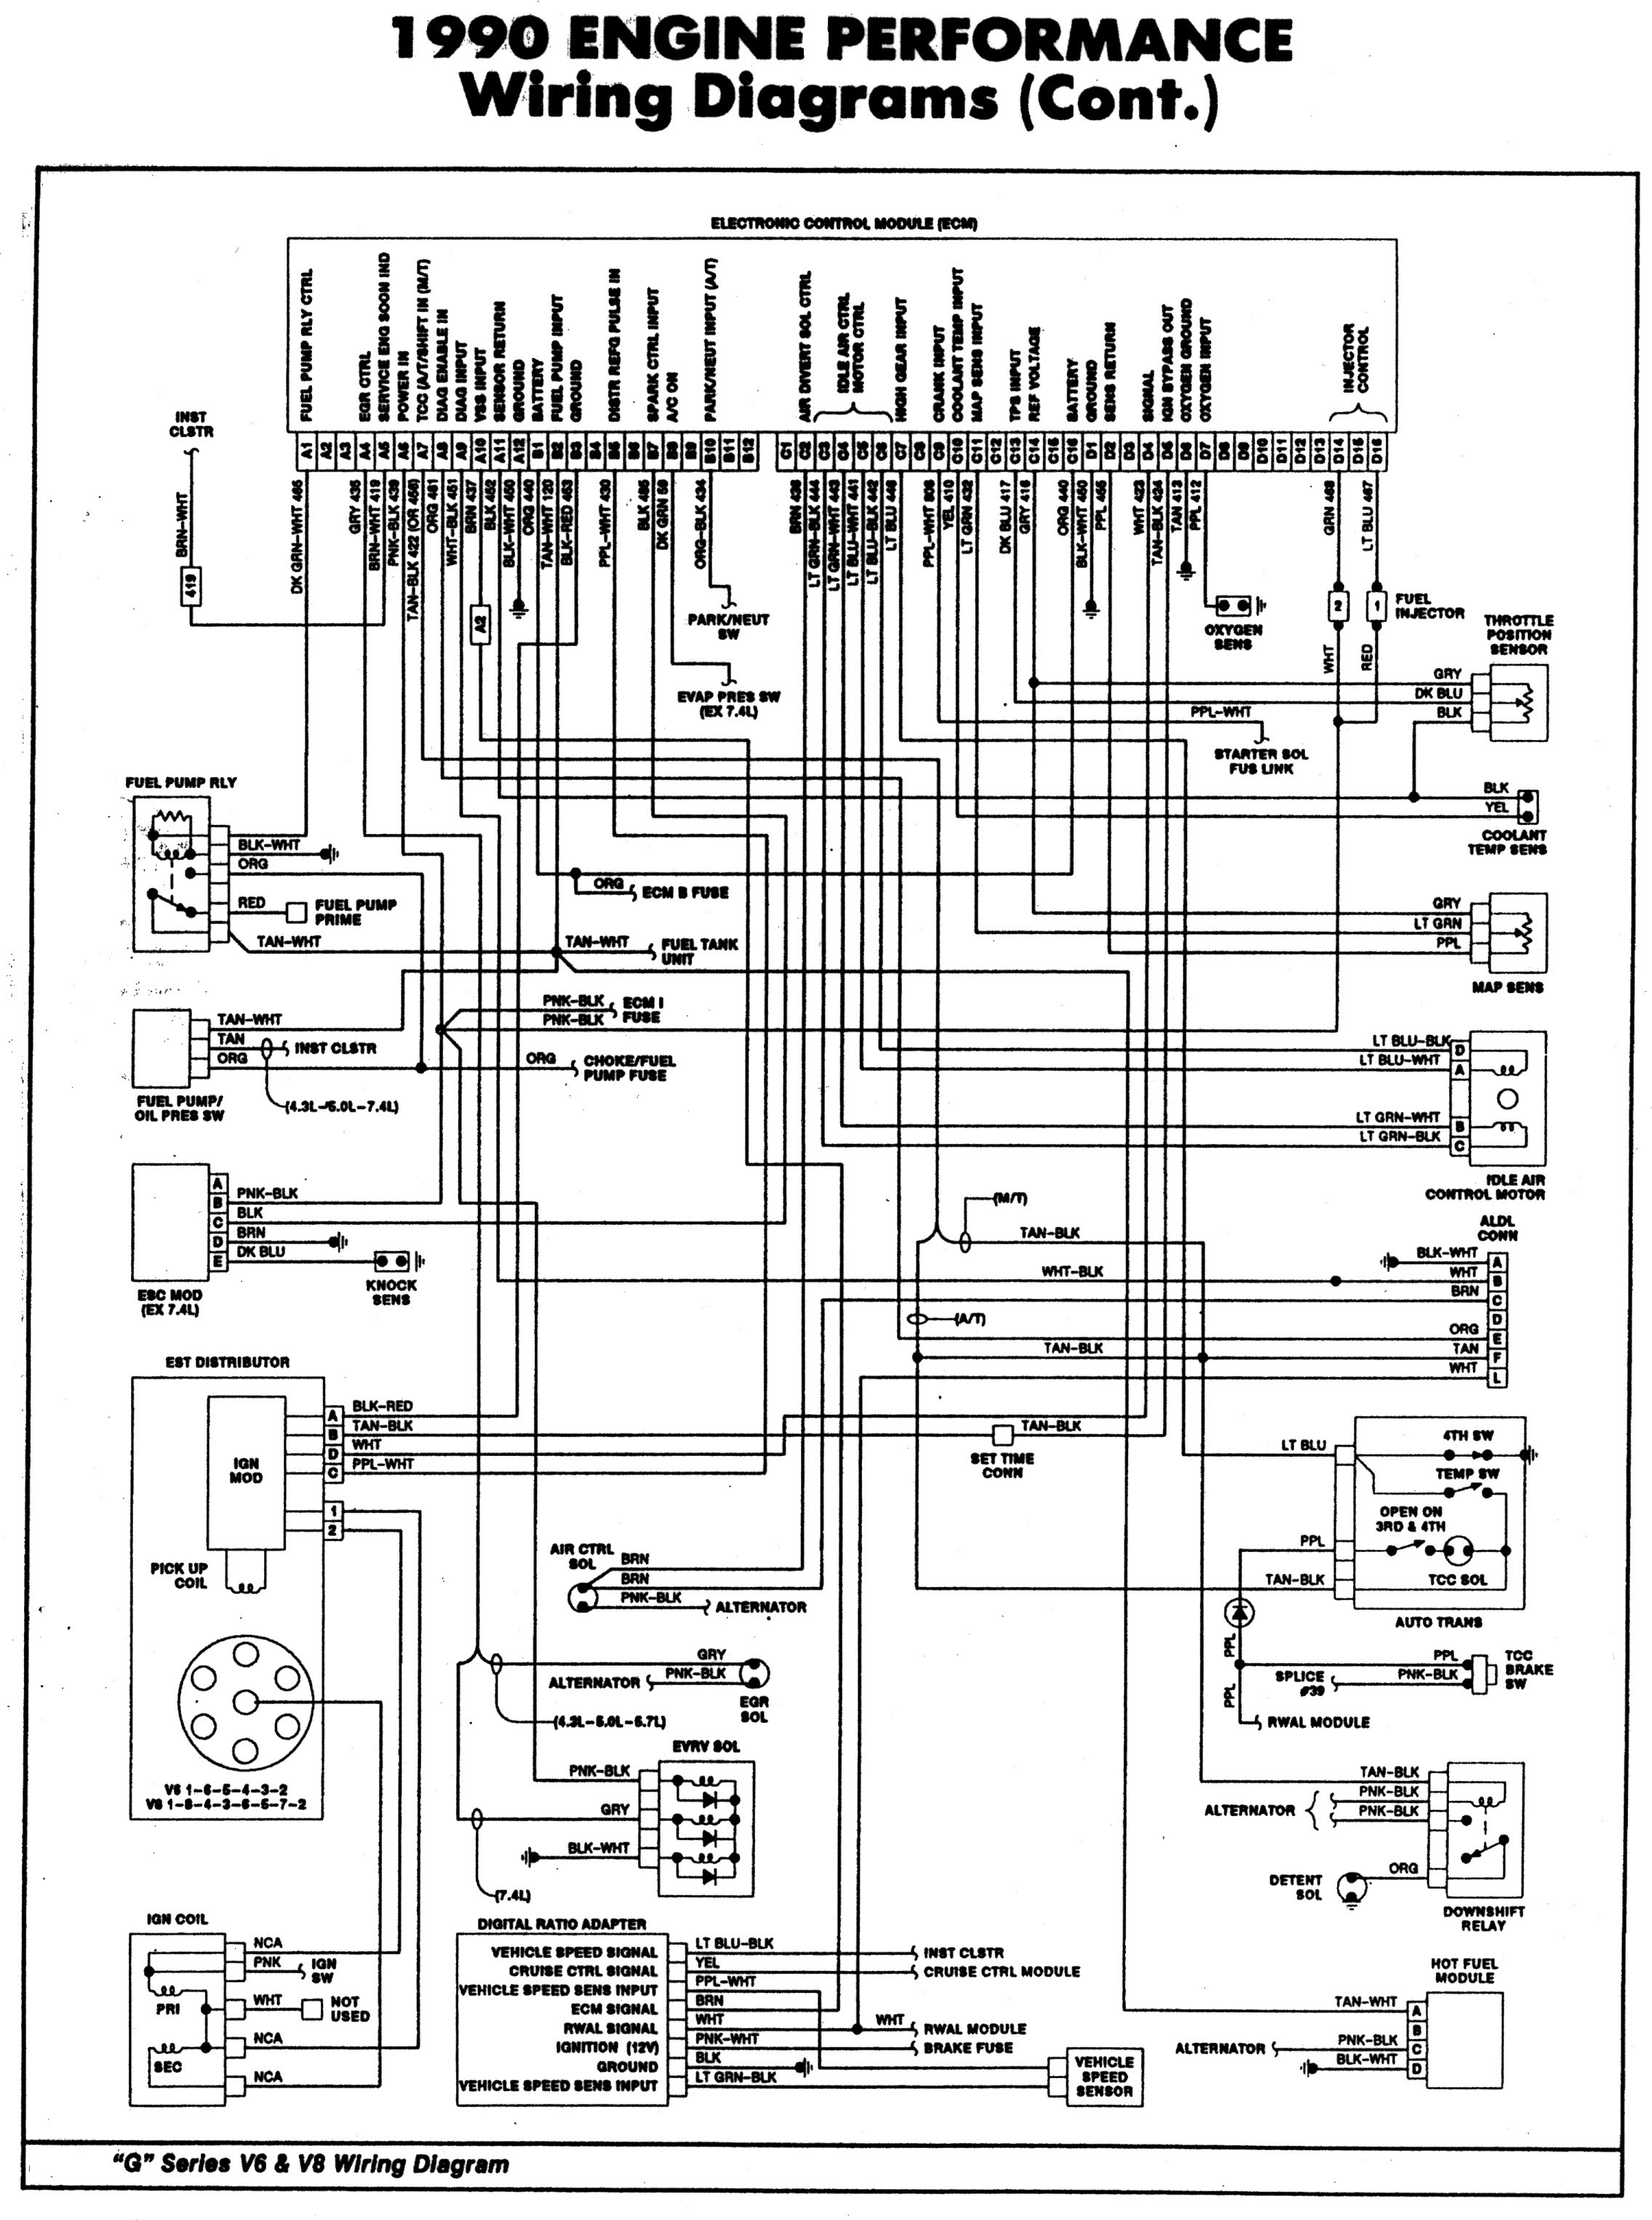 1995 s10 engine diagram owner manual \u0026 wiring diagram 1991 S10 Wiring Diagram